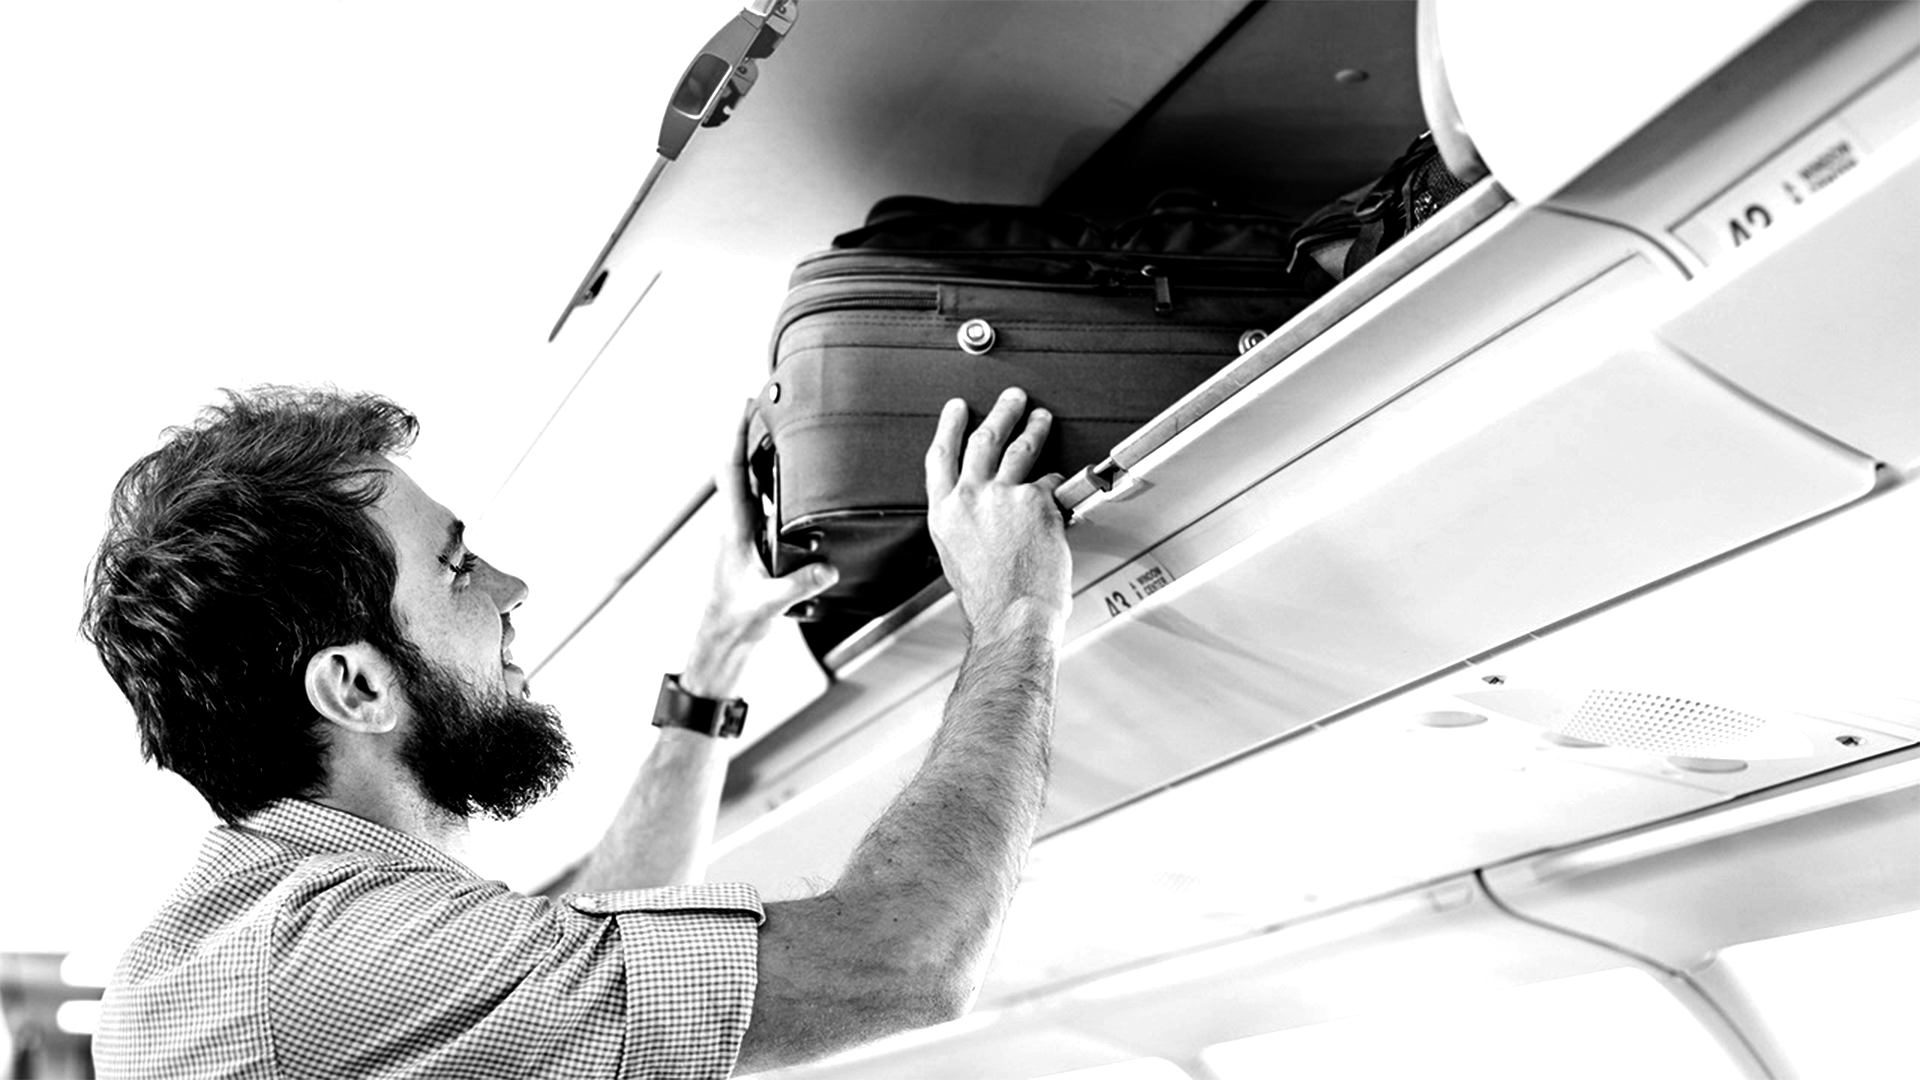 Man putting luggage in overhead bin on airplane